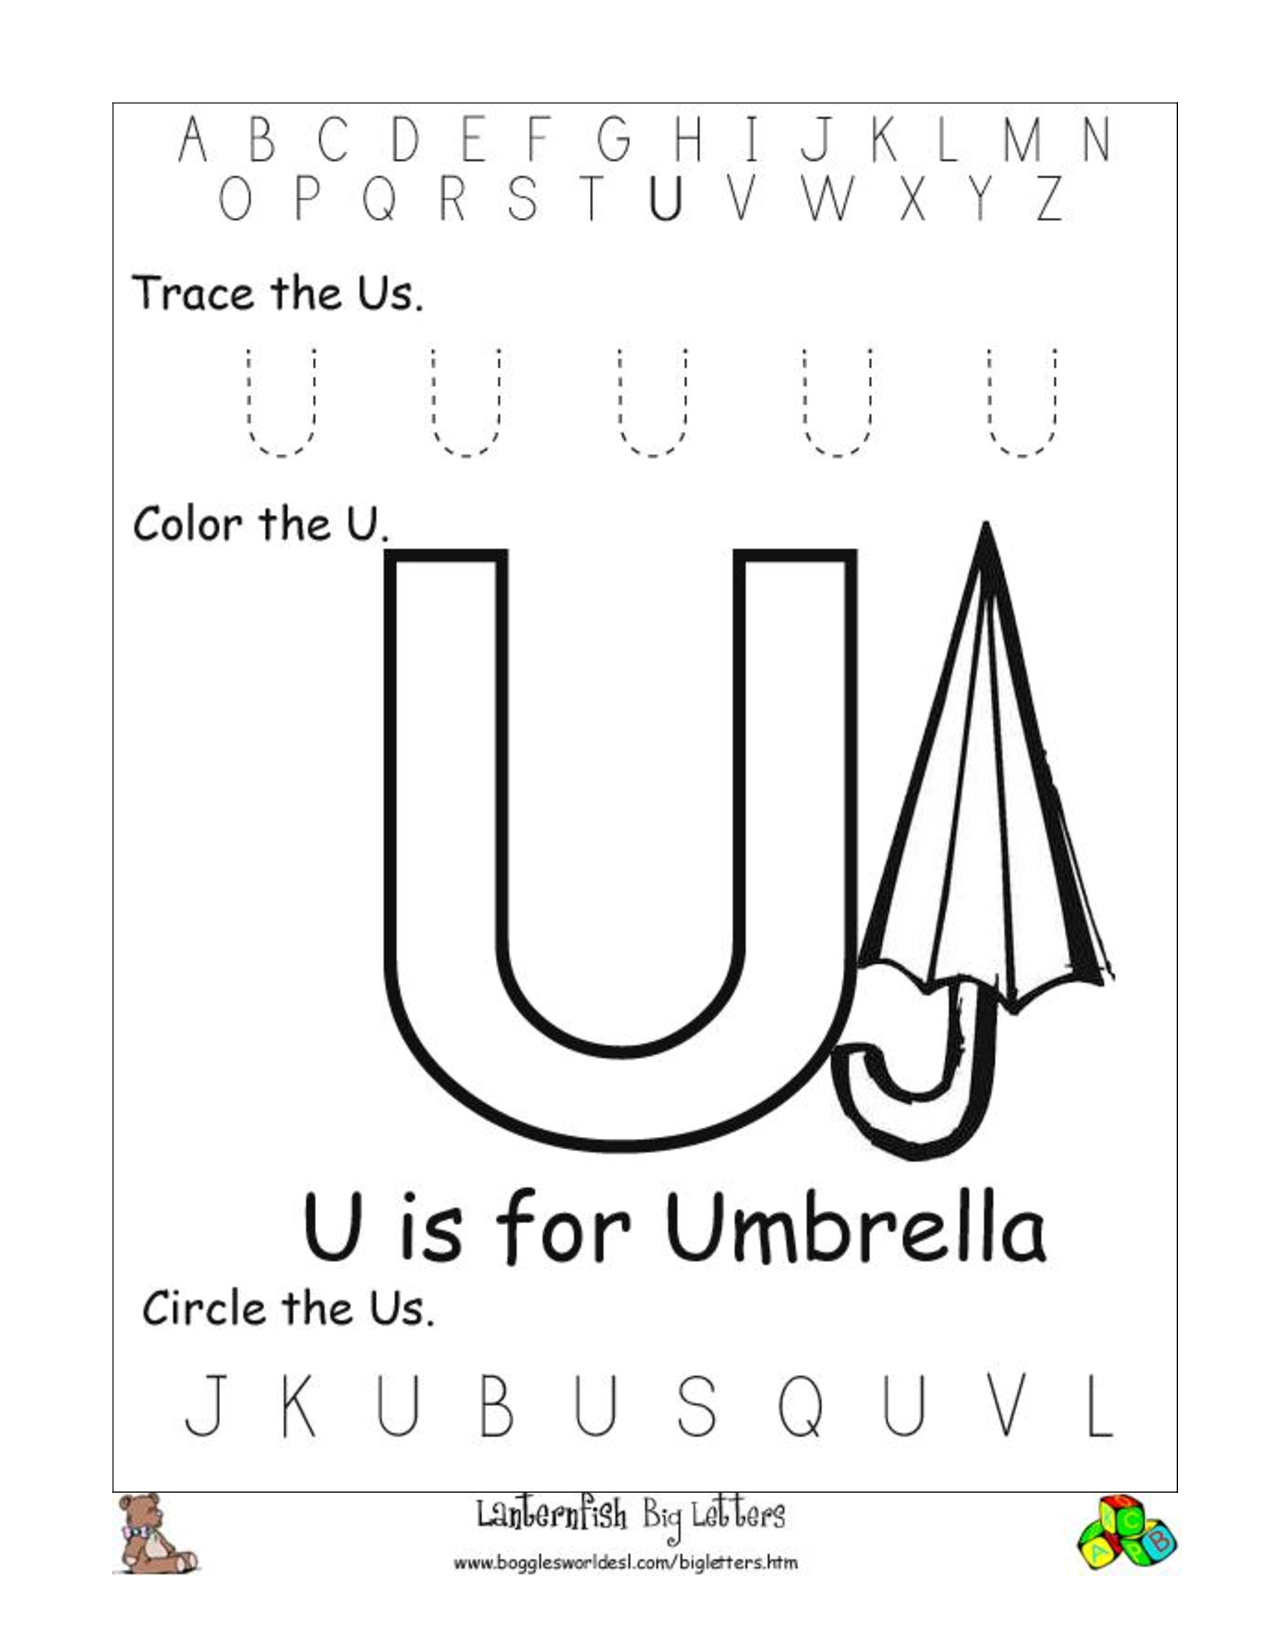 Alphabet Worksheets For Preschoolers | Alphabet Worksheet in Letter Tracing Worksheets Doc